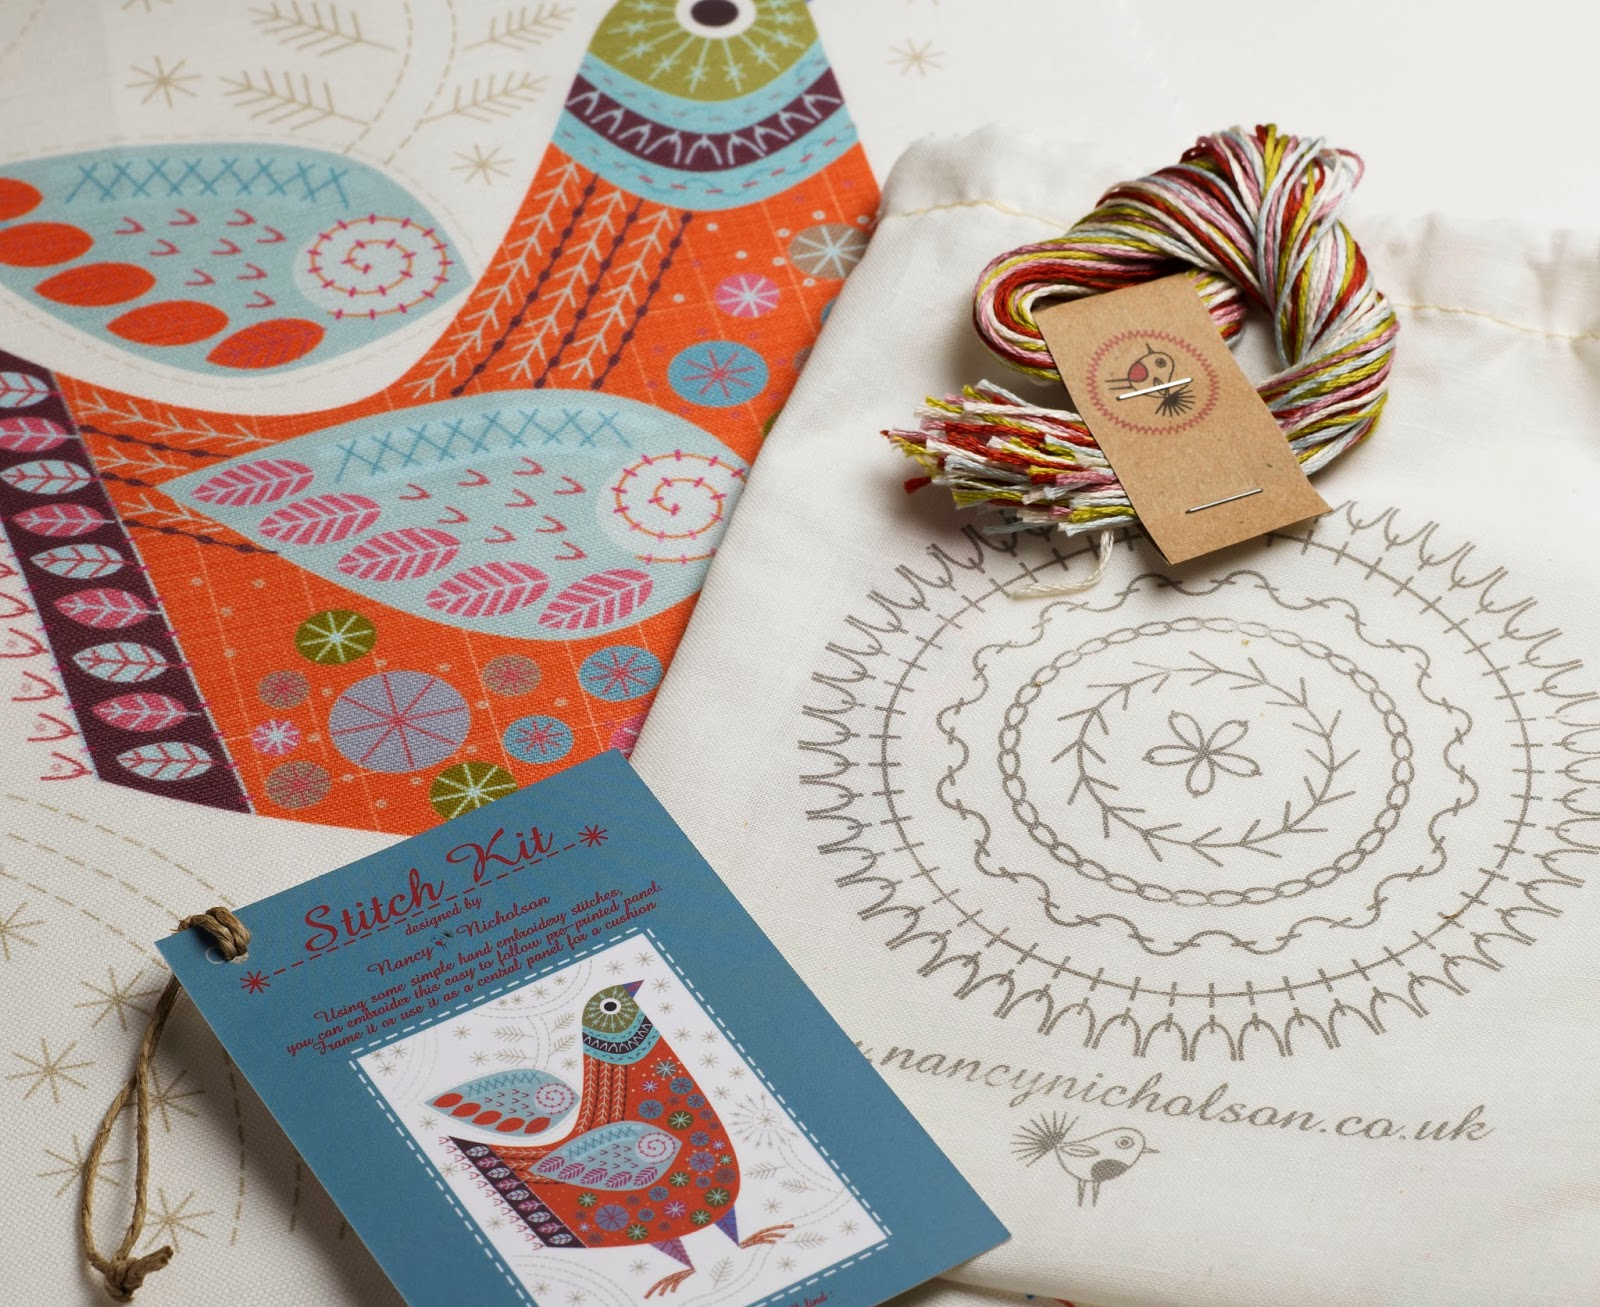 Bird embroidery kit, unpacked